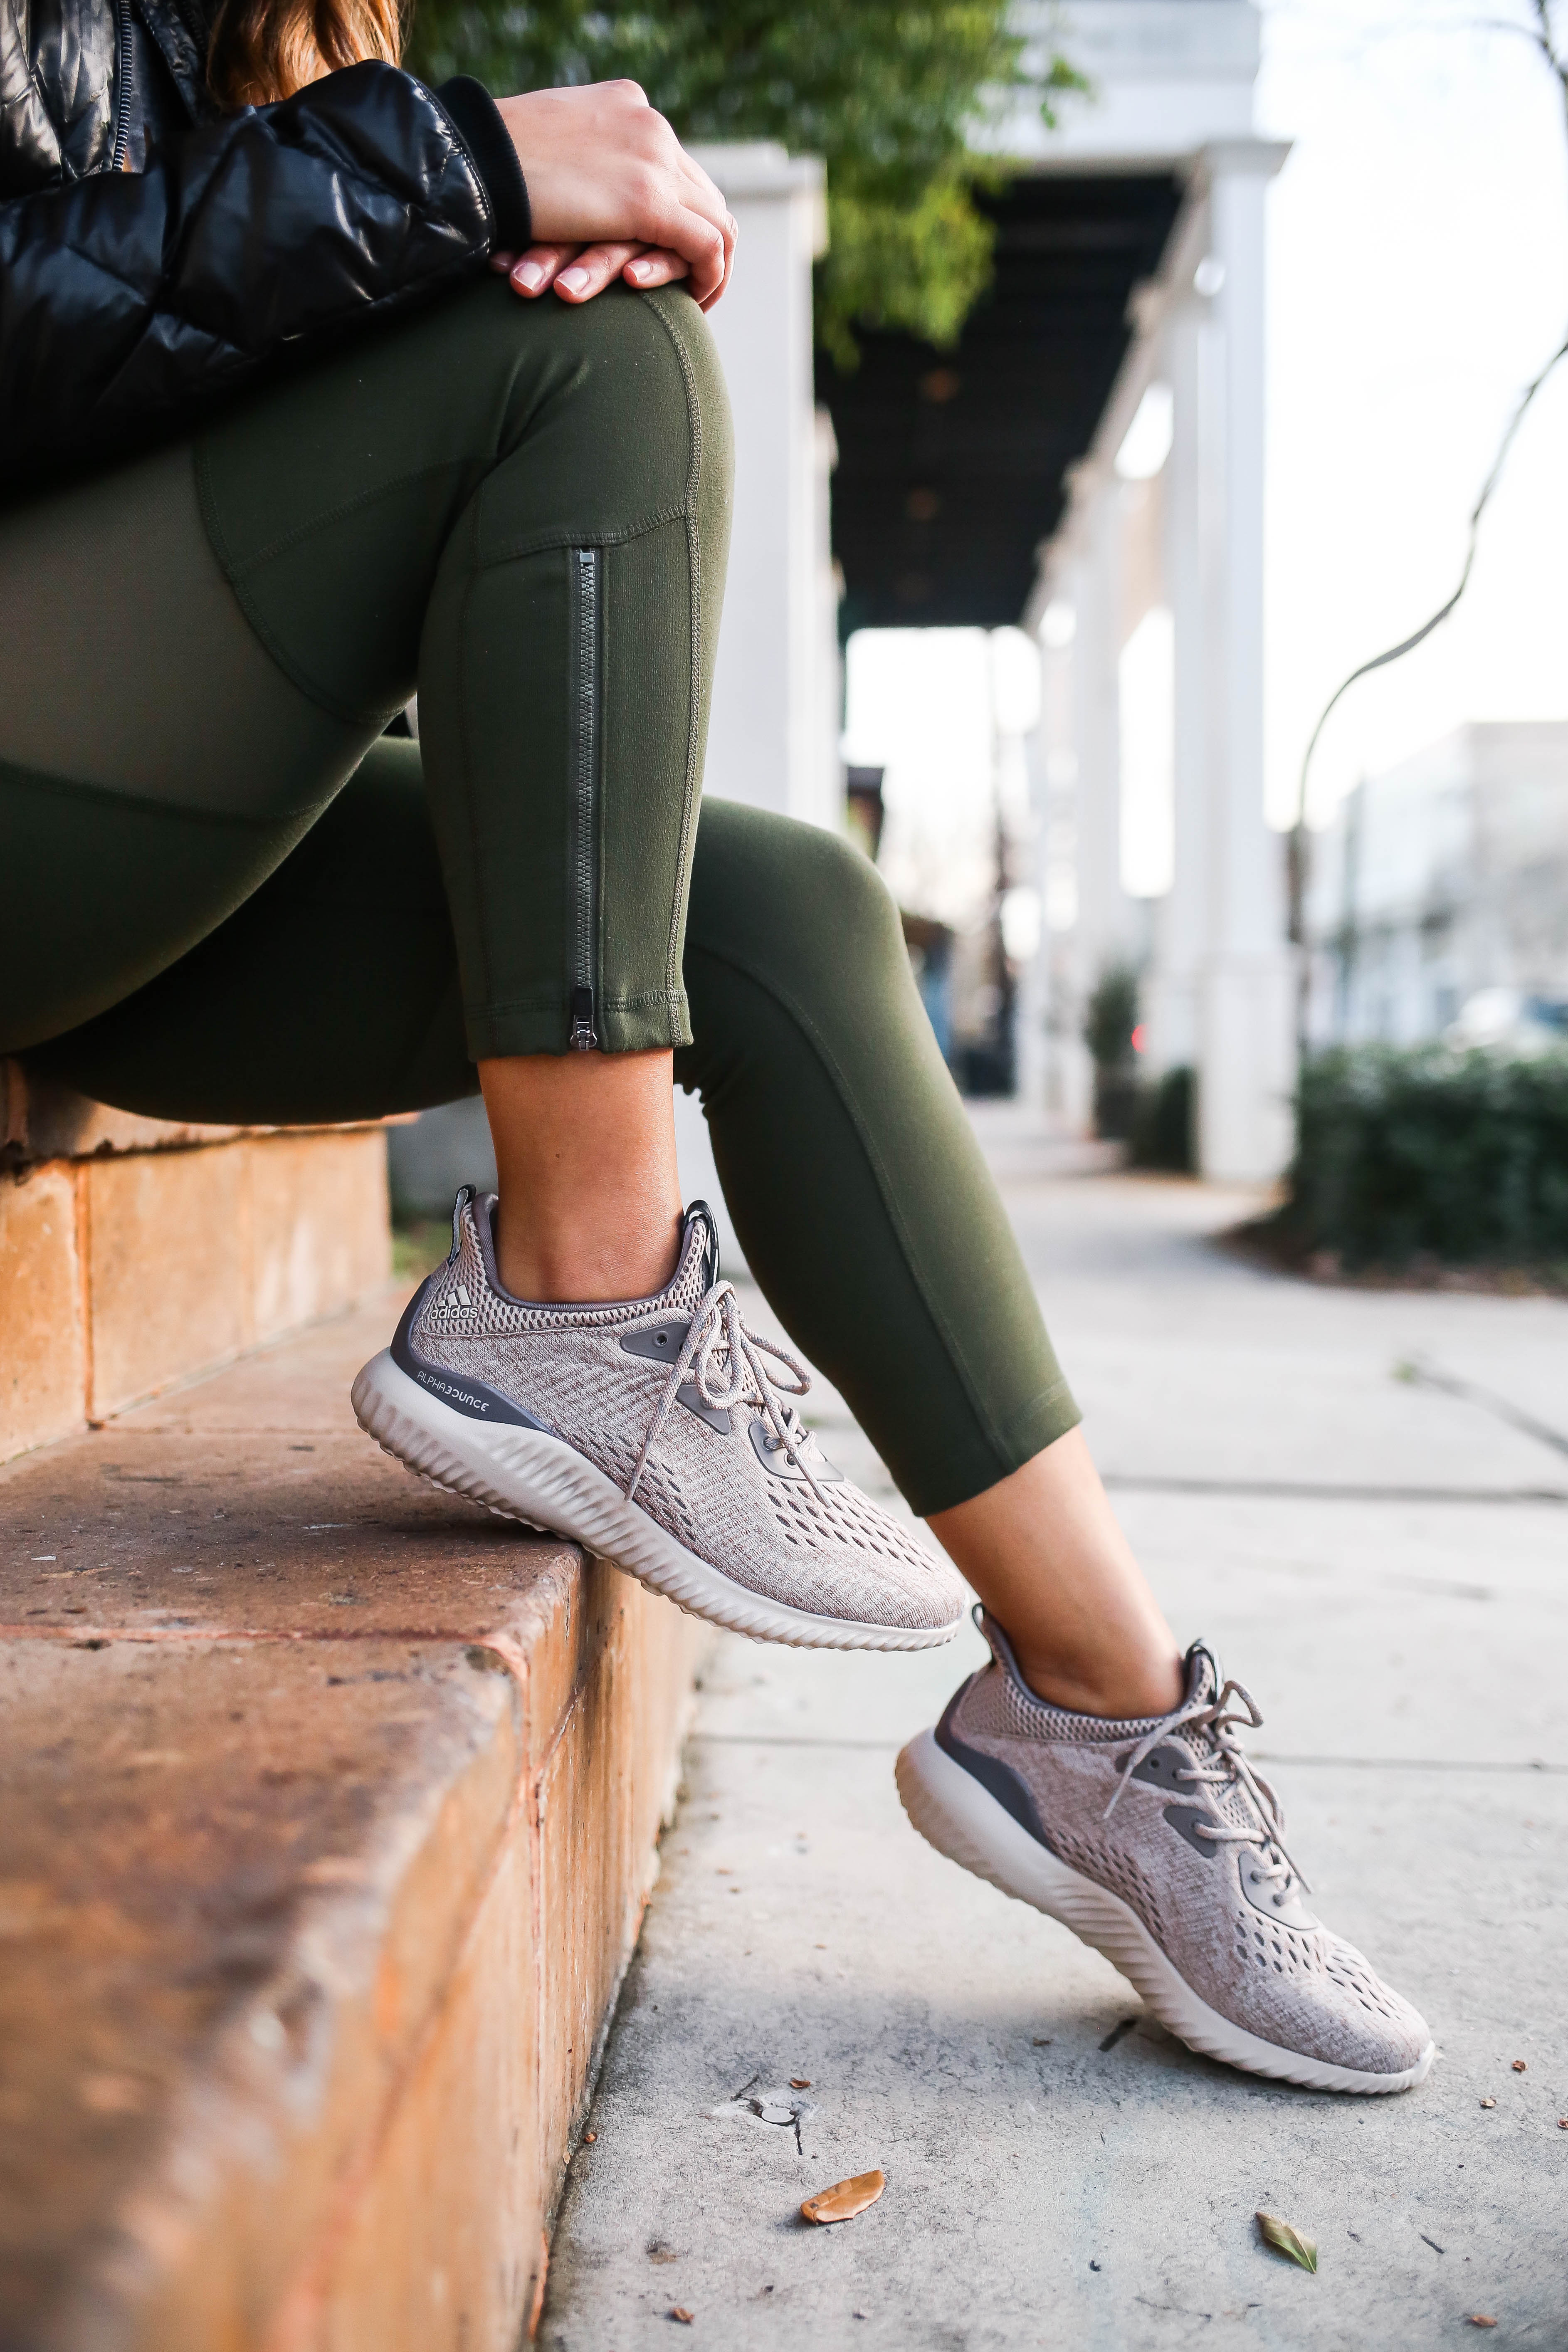 Adidas AlphaBounce Running Shoes Archives · Haute Off The Rack c3f87608ec